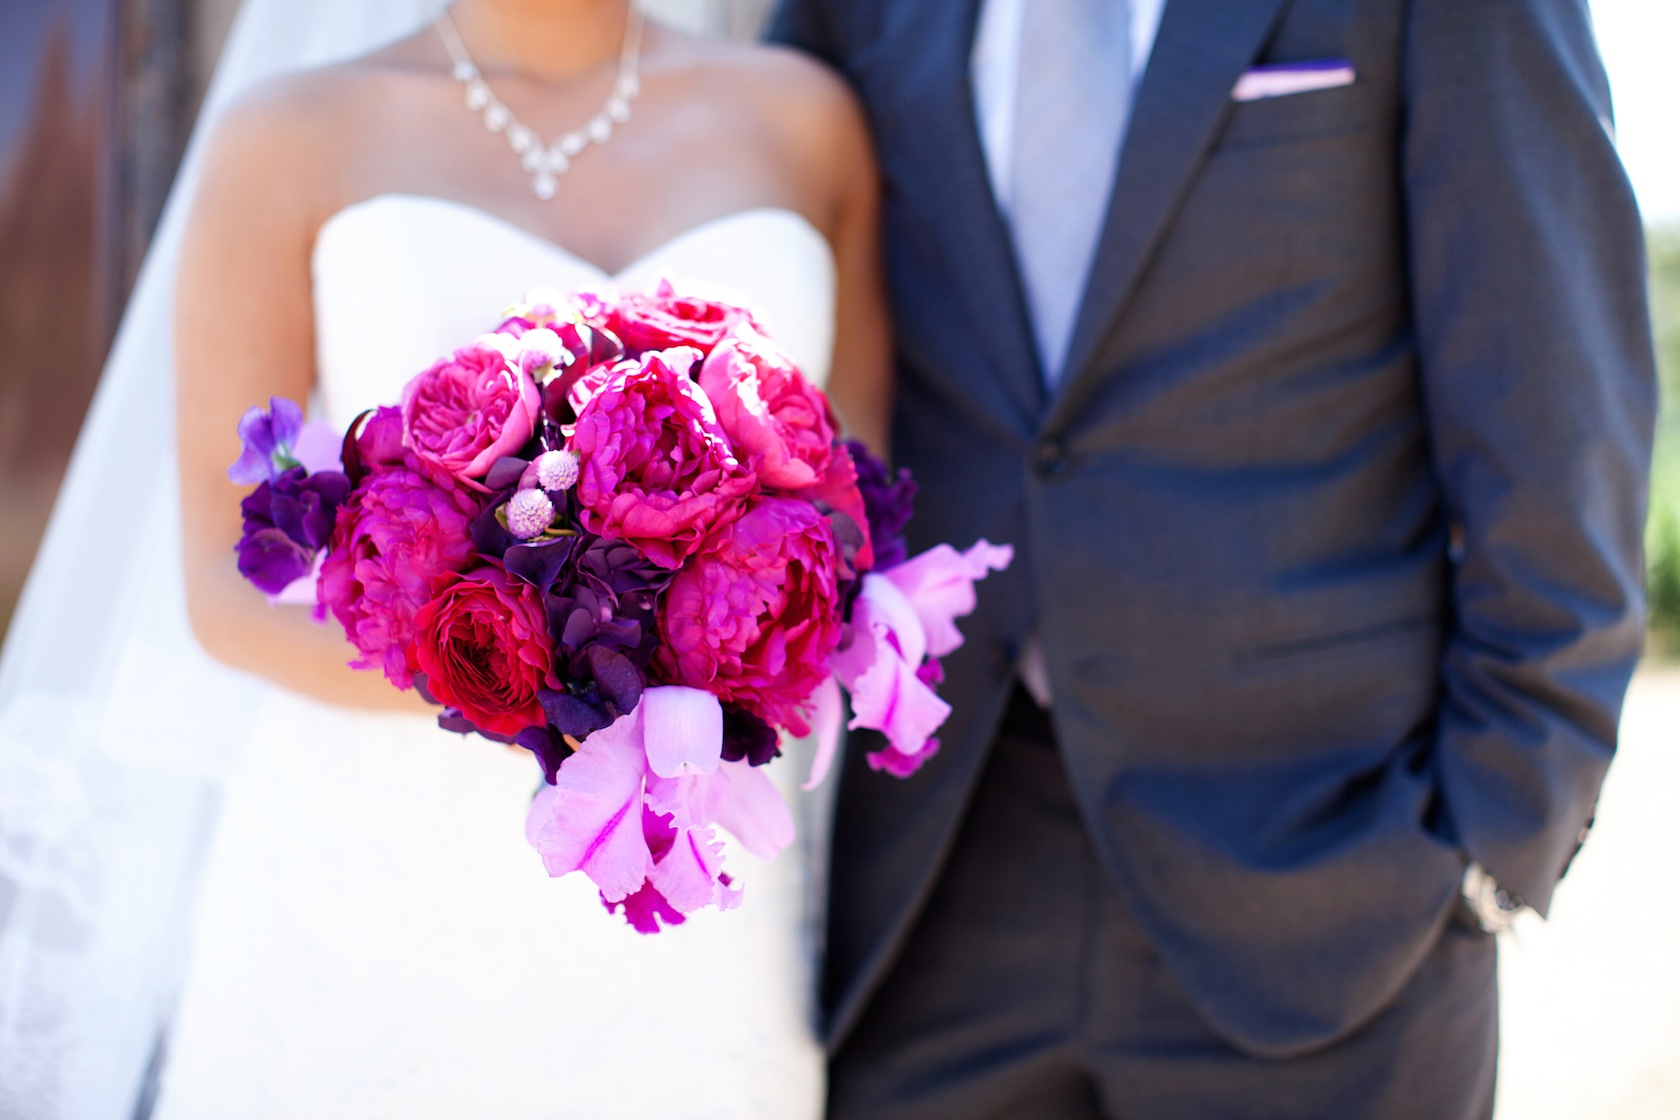 Elegant-california-wedding-with-bold-florals-personalized-details-bride-groom-with-bouquet.original